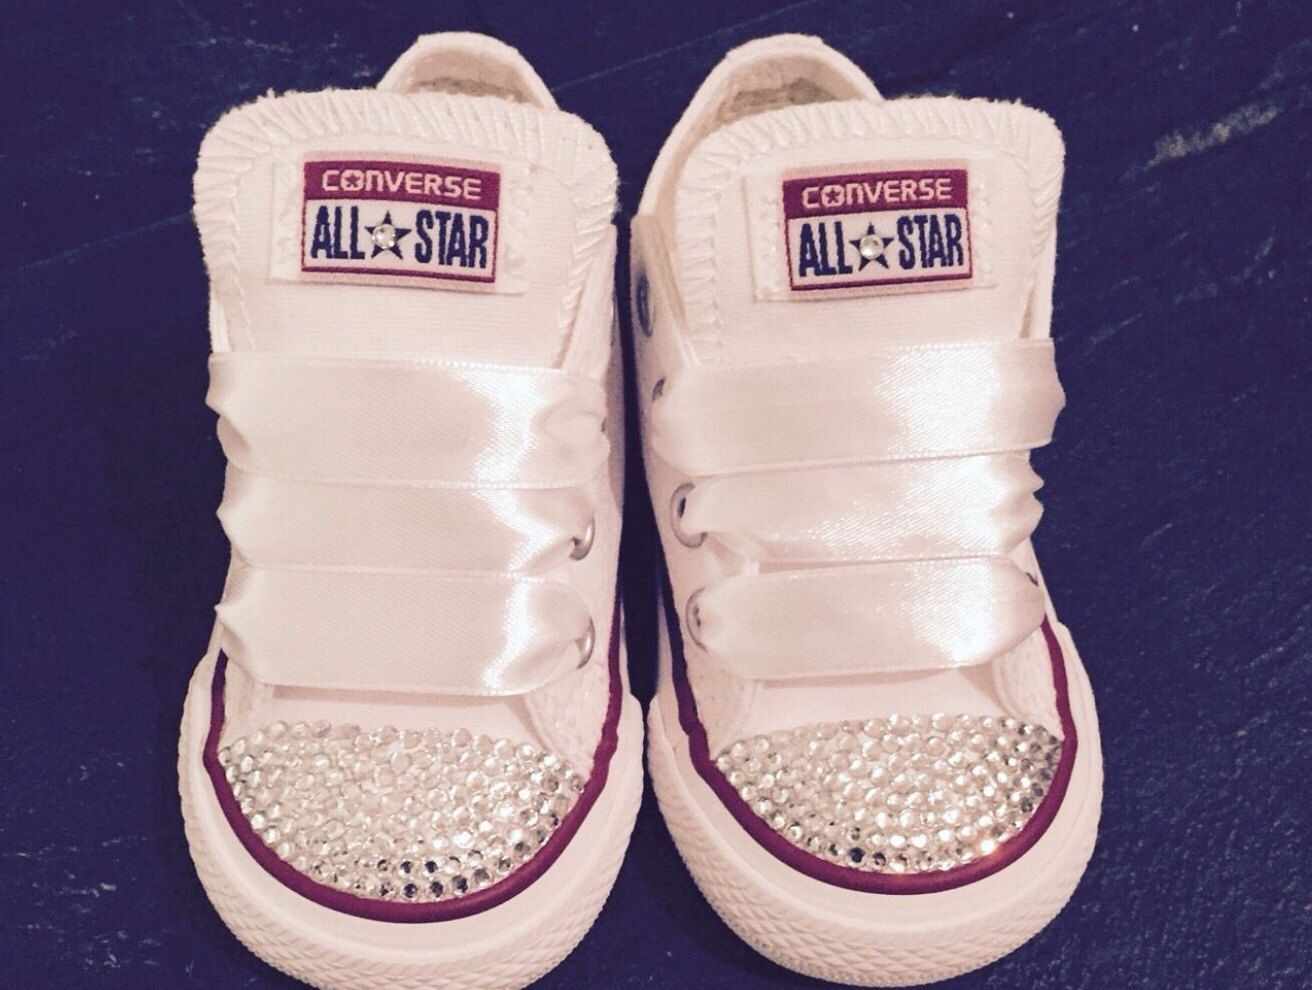 46279c2abe23 Kids infants  amp  toddler sizes crystal sparkly converse all star shoes  with clear swarovski crystals